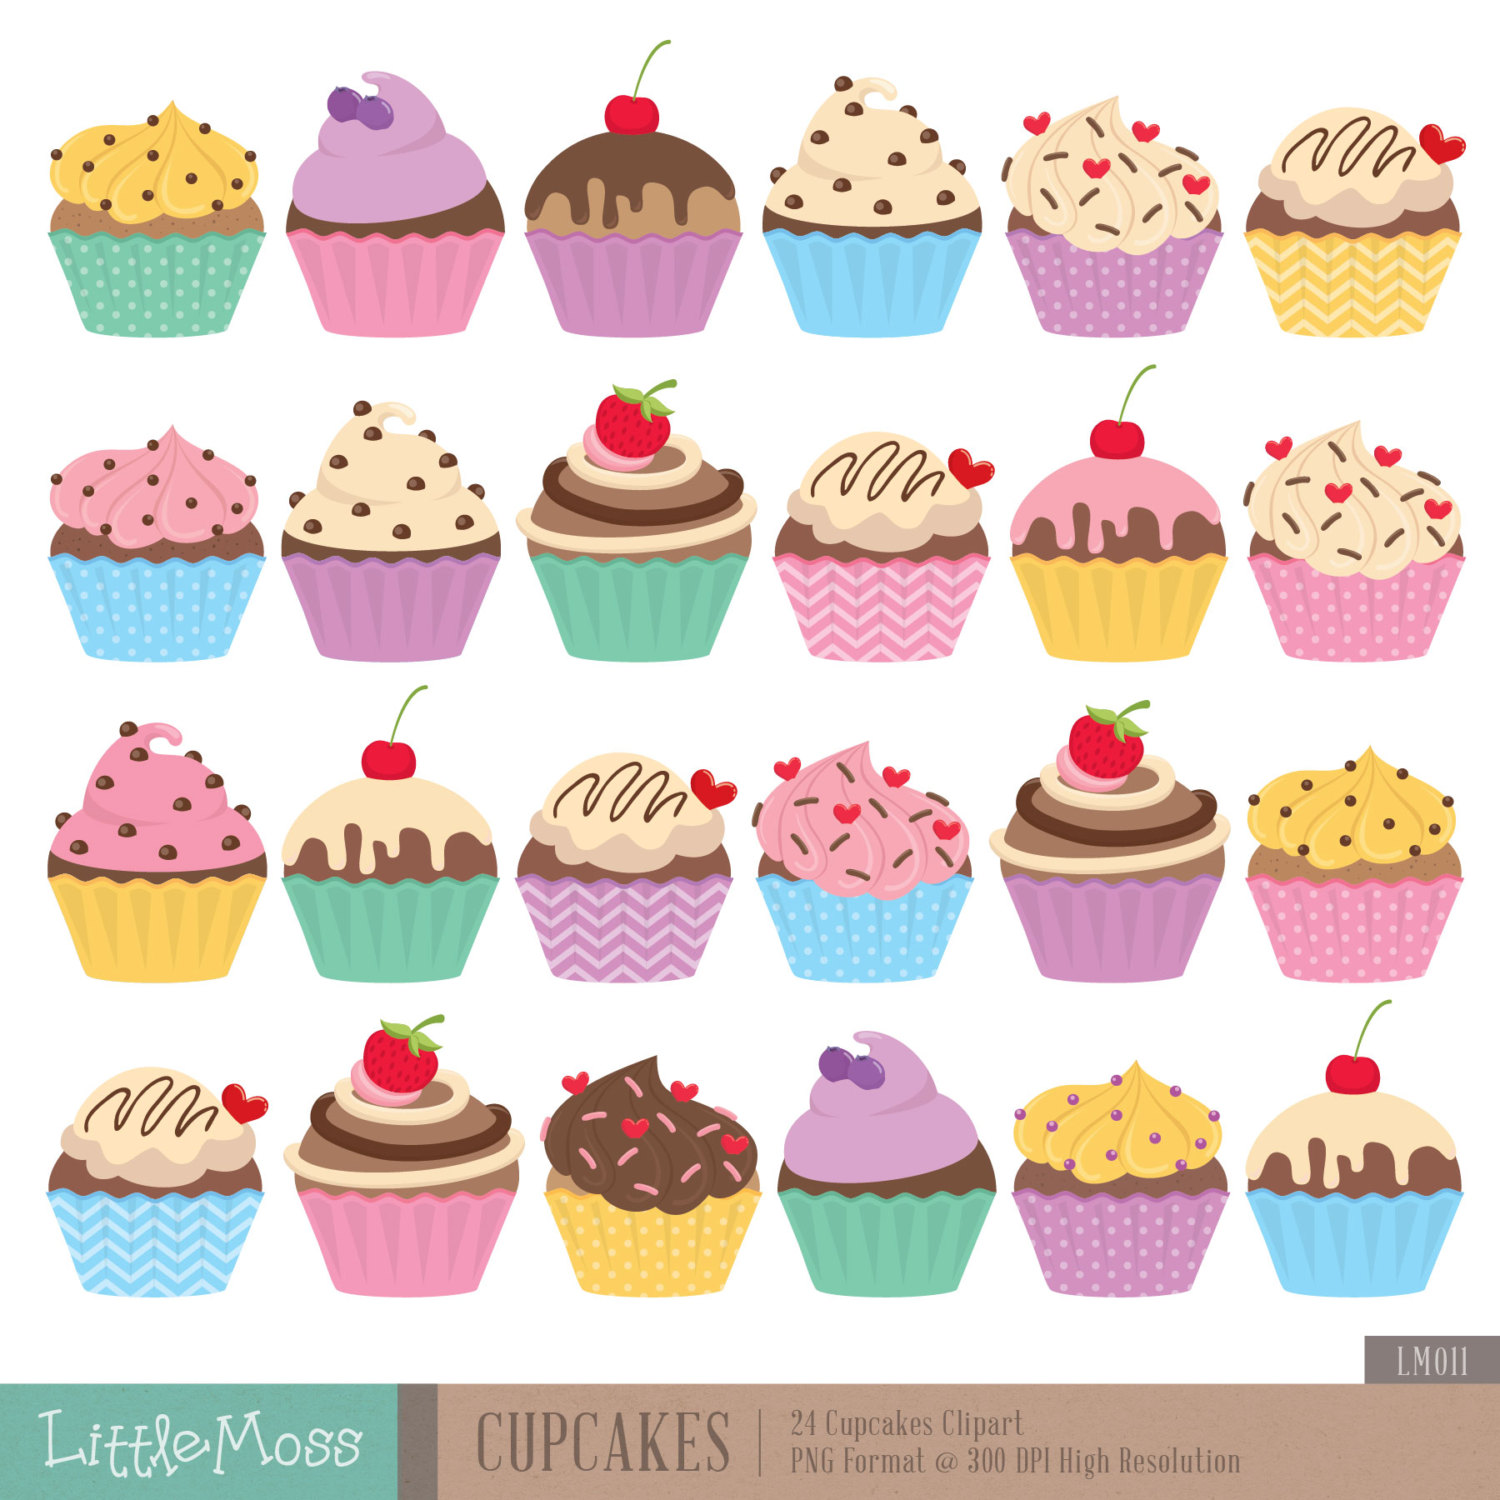 Cupcakes Digital Clipart By Littlemoss On Etsy